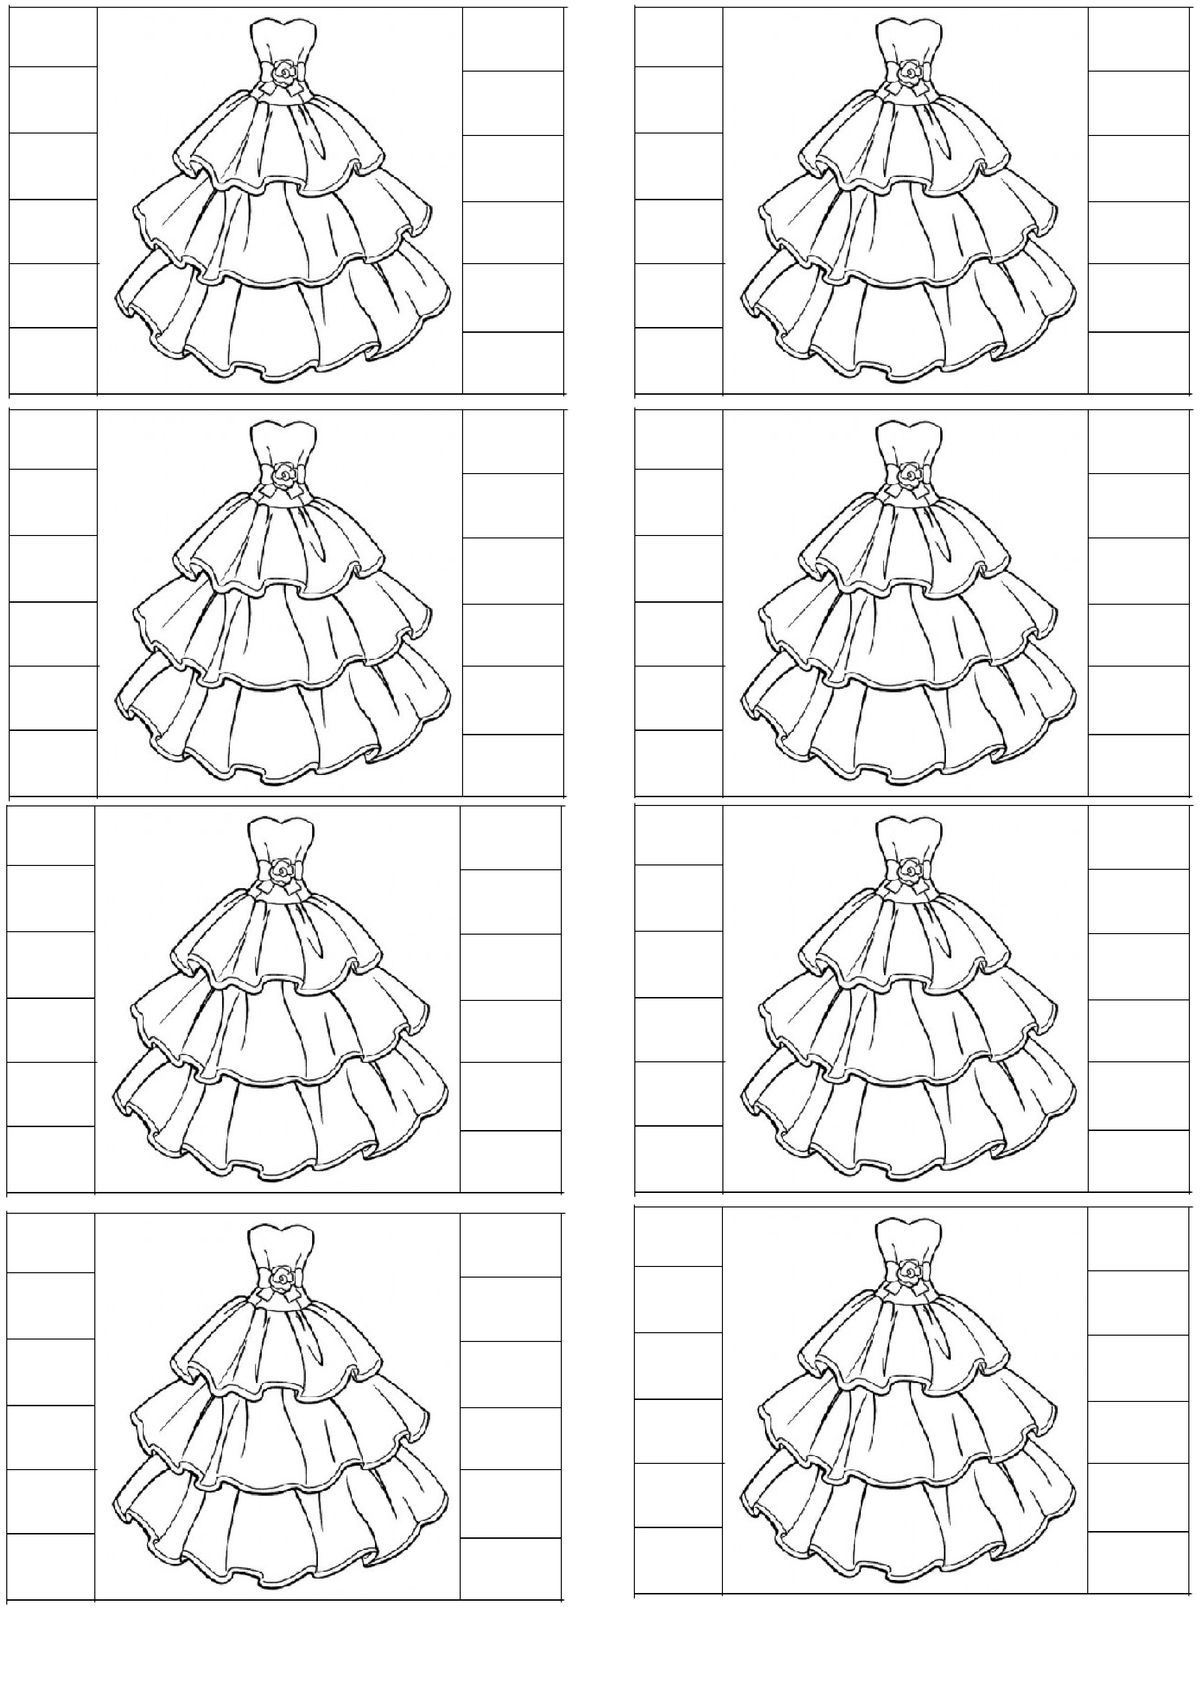 coloring pencils and markers marker coloring pages coloring pages to download and print pencils and coloring markers